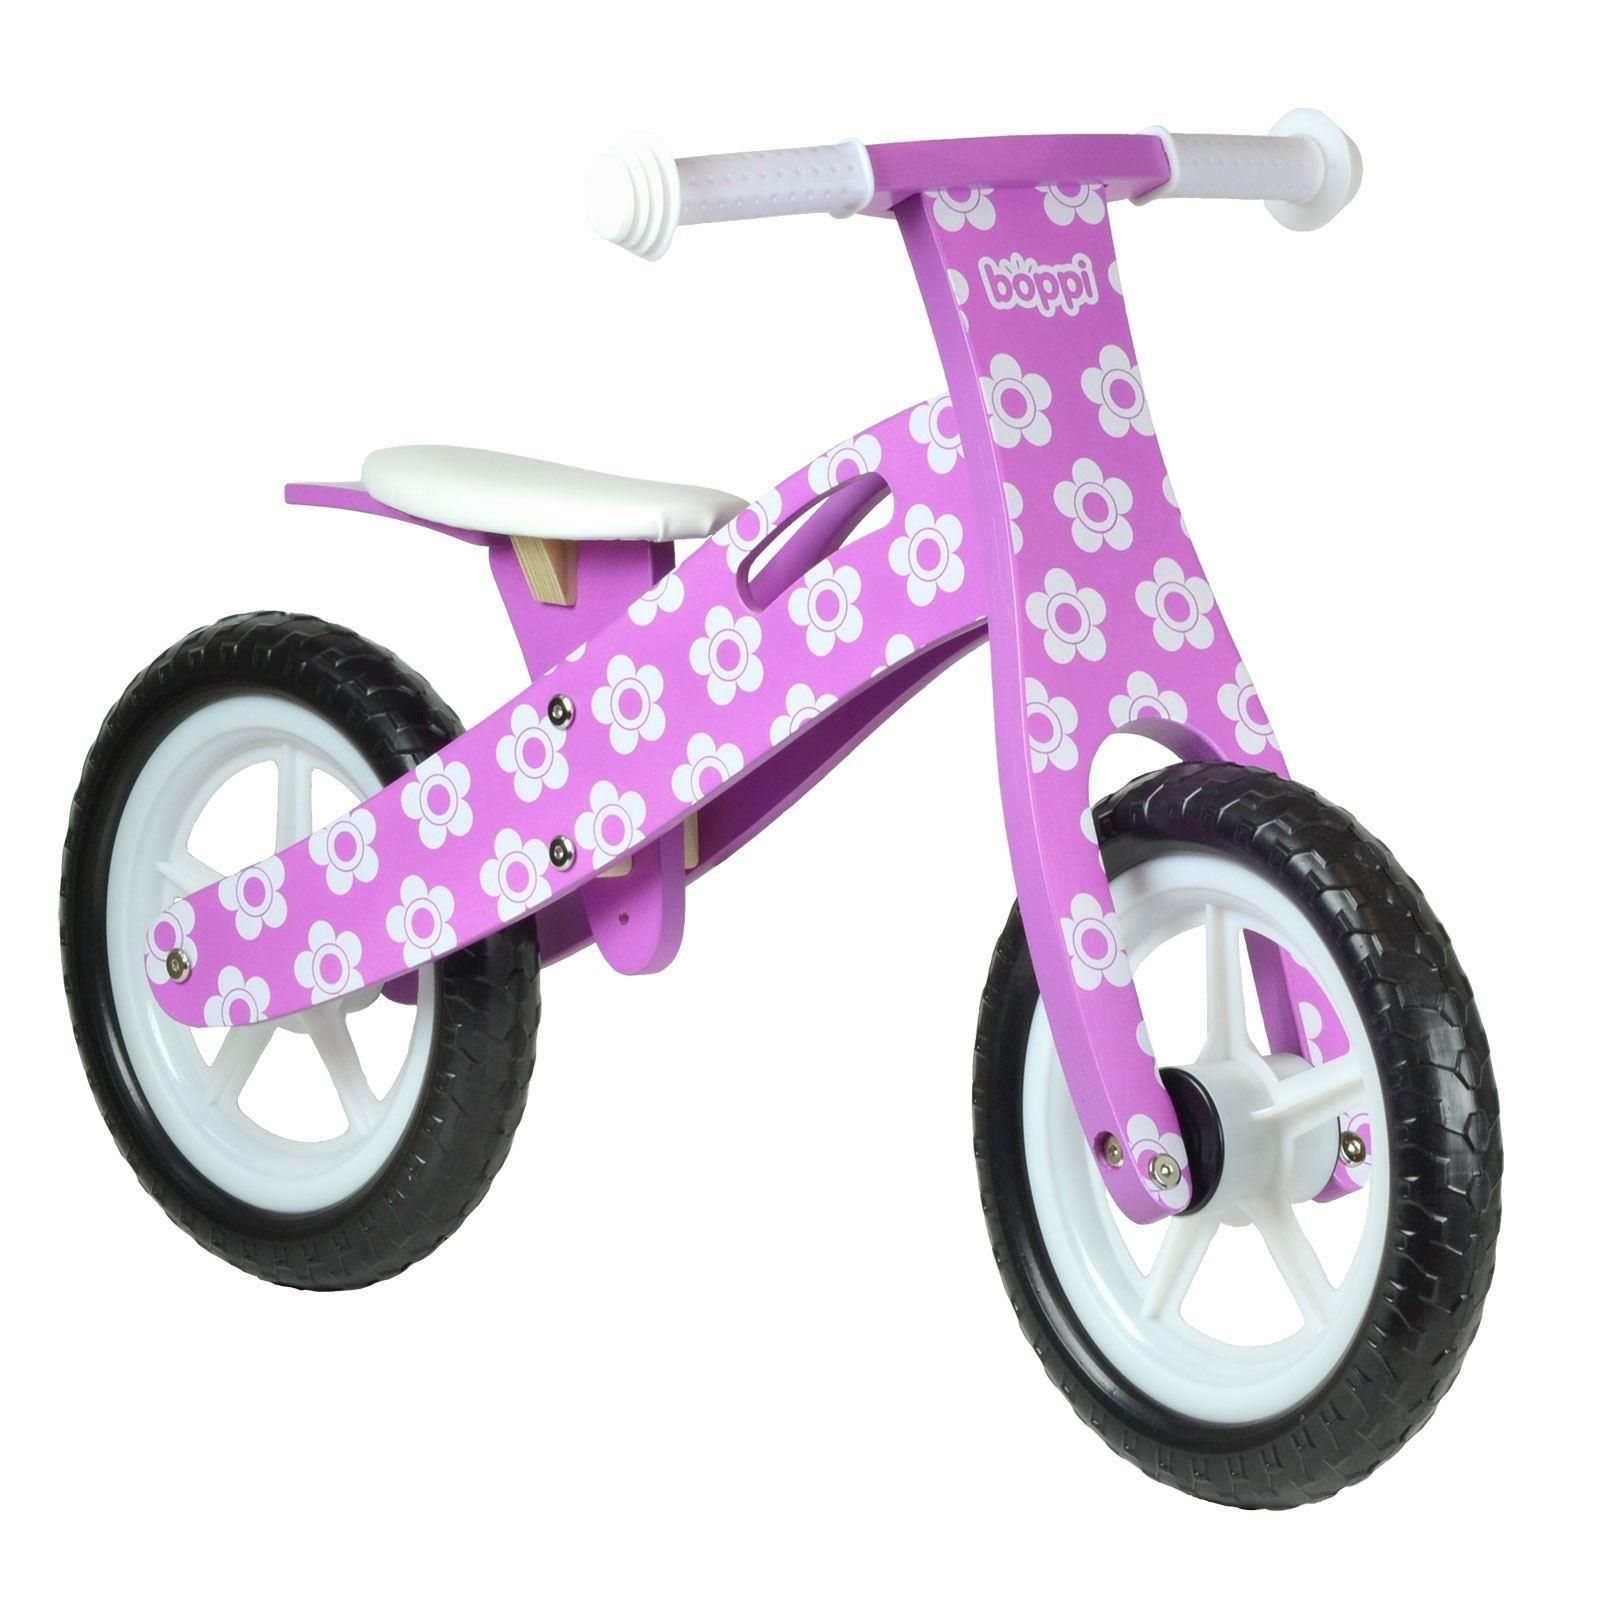 boppi® Wooden Balance Training Bike - Purple Flower bopster